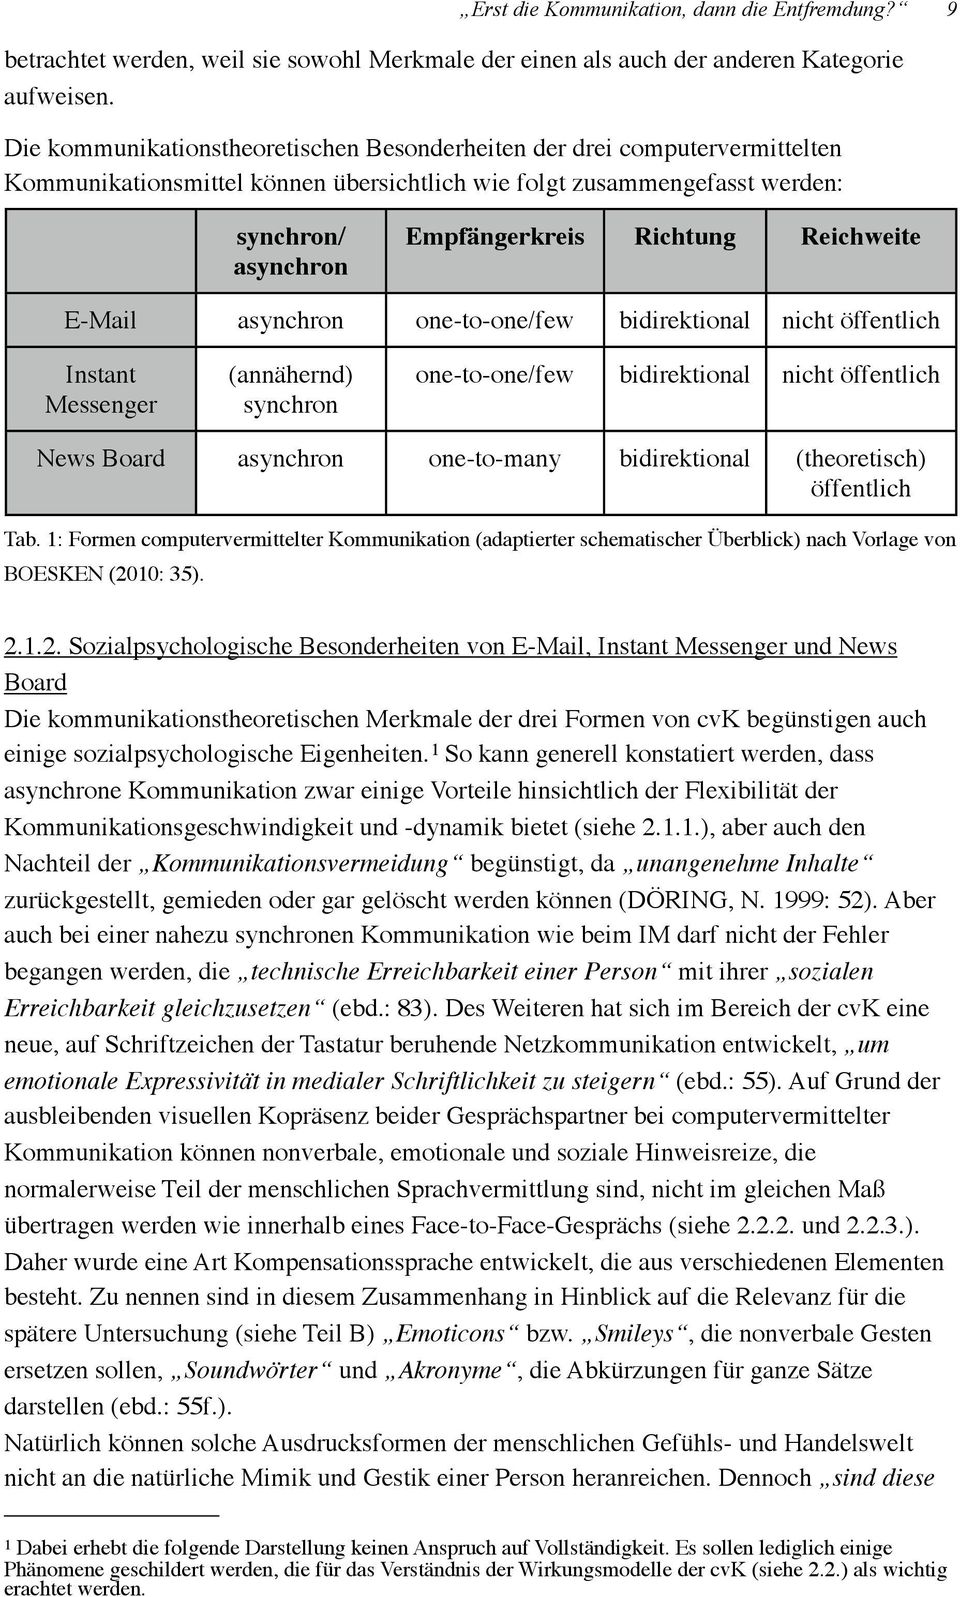 Reichweite E-Mail asynchron one-to-one/few bidirektional nicht öffentlich Instant Messenger (annähernd) synchron one-to-one/few bidirektional nicht öffentlich News Board asynchron one-to-many